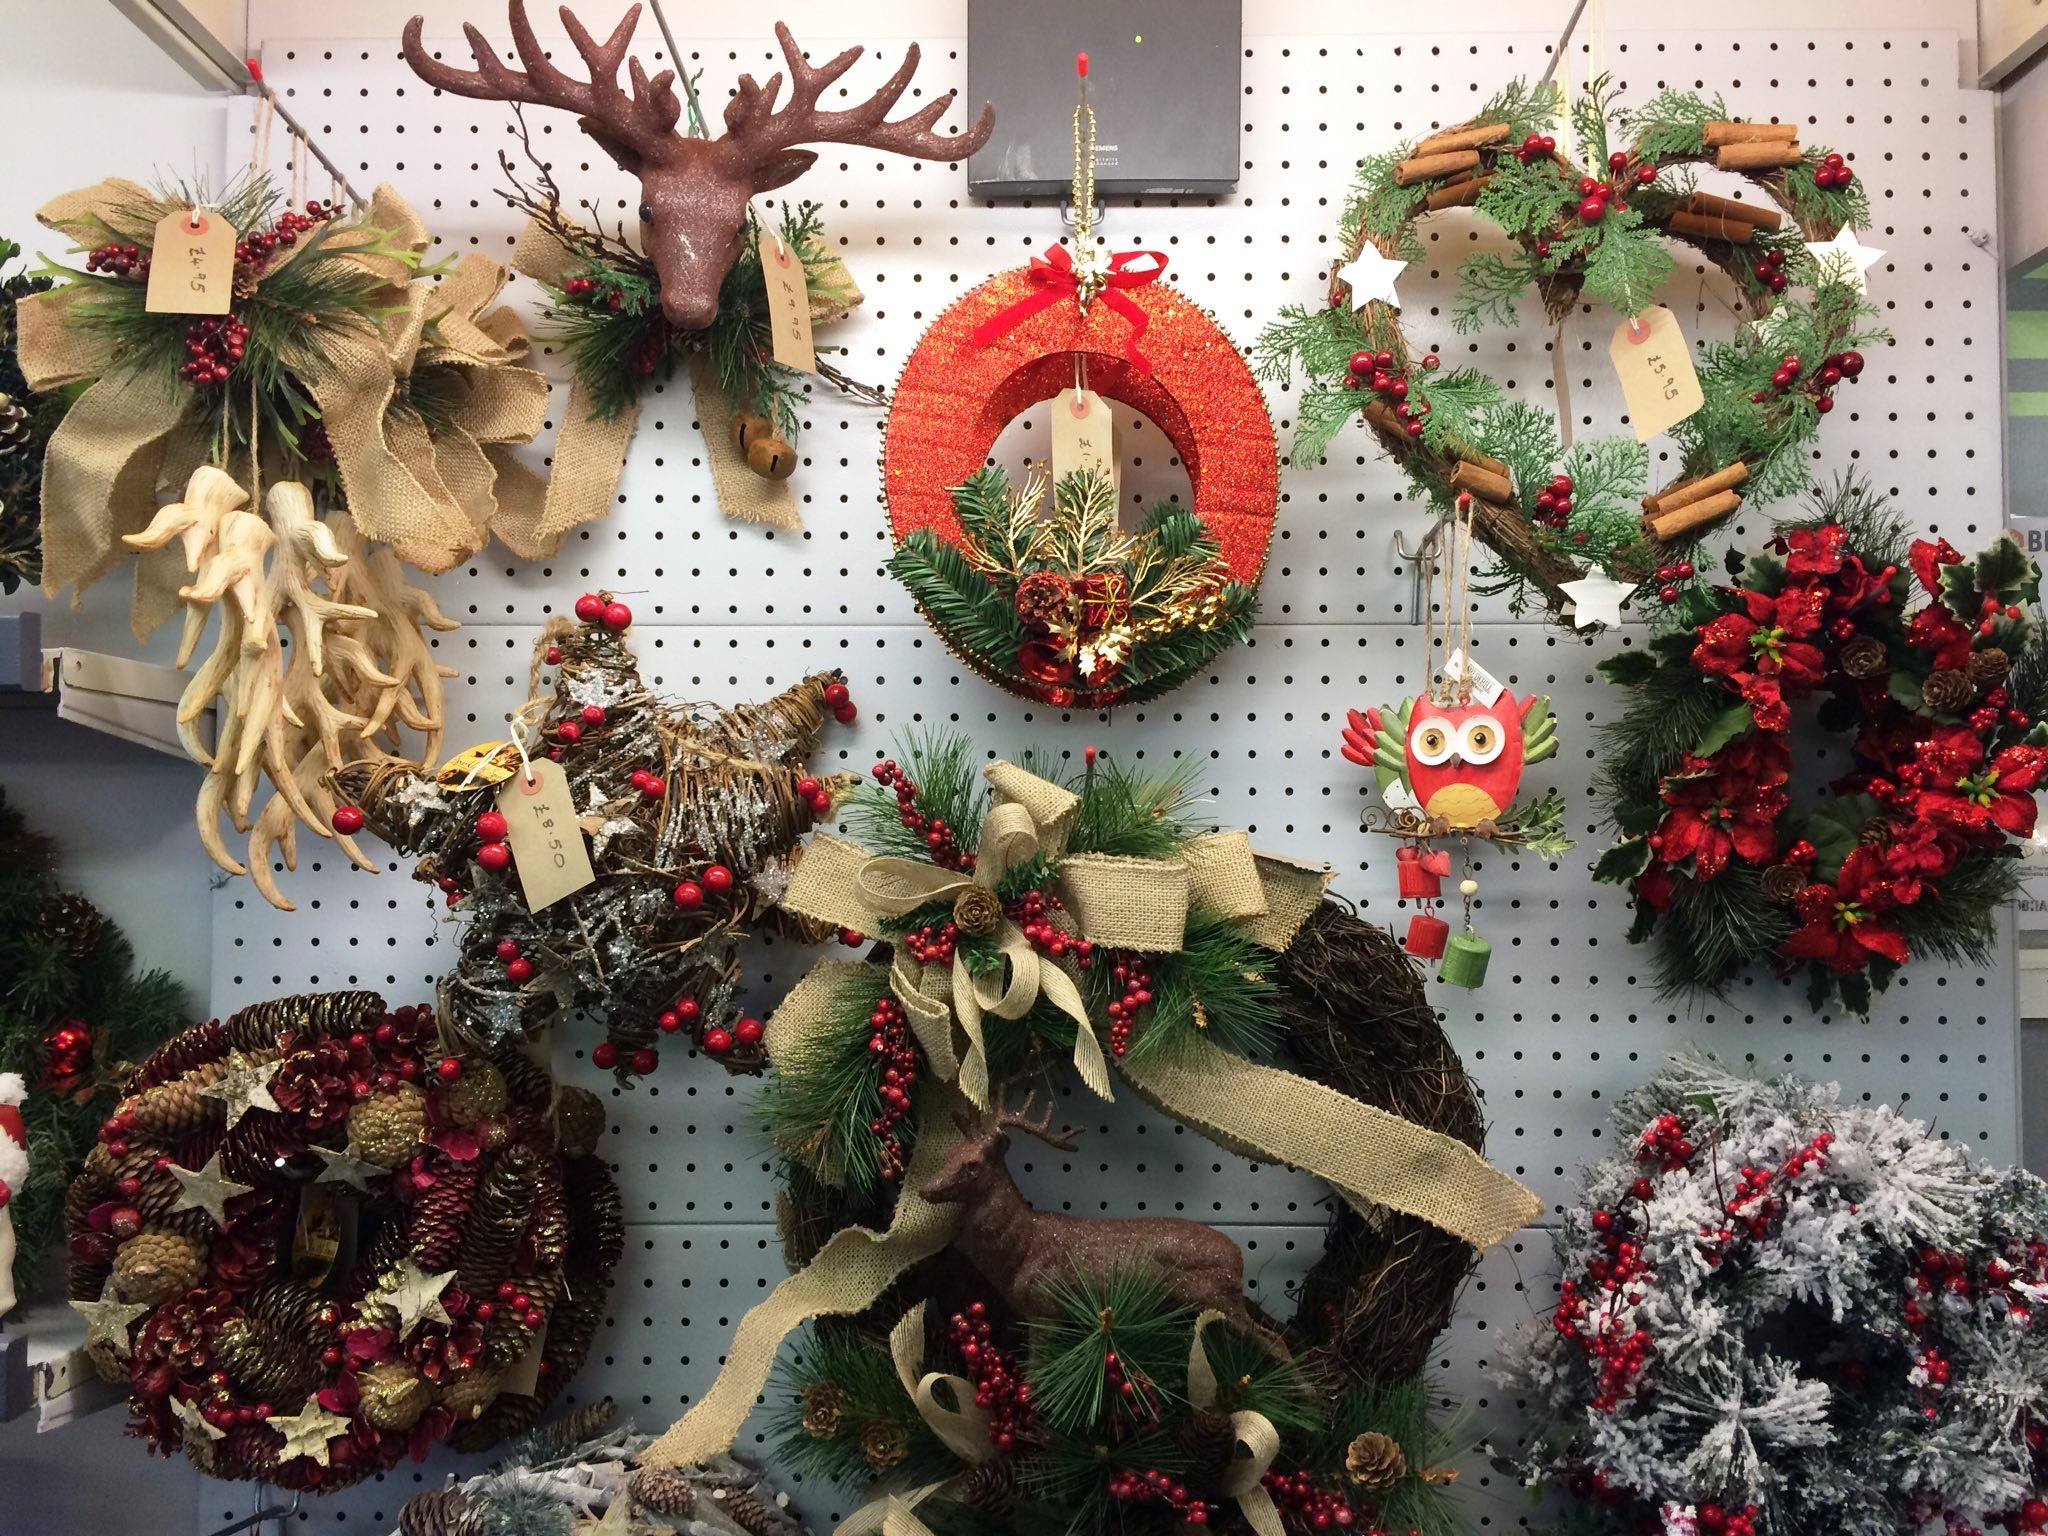 GARDEN CENTRE LEAPS INTO FESTIVE SEASON WITH NEW CHRISTMAS OPEN HOURS